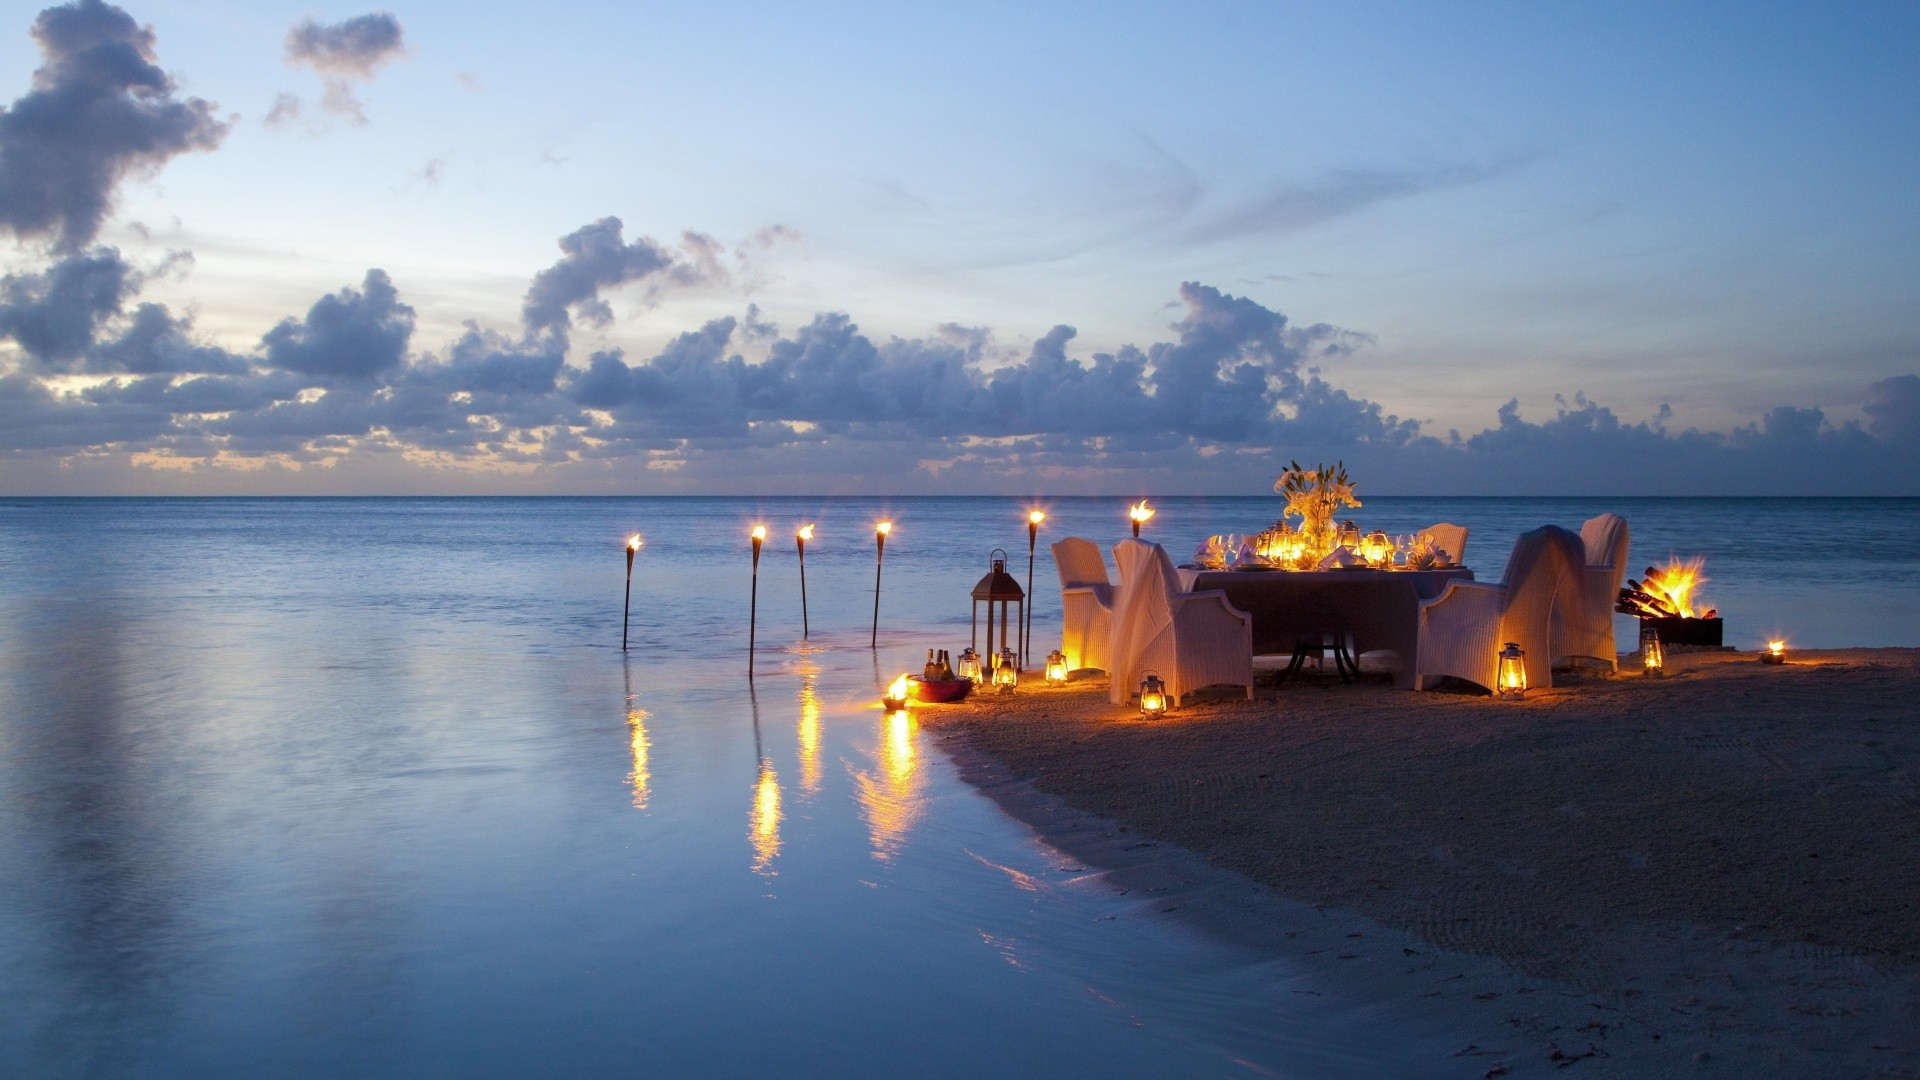 naatashabanks Dreaming about romantic candle light dinner on the beach custom pic 1